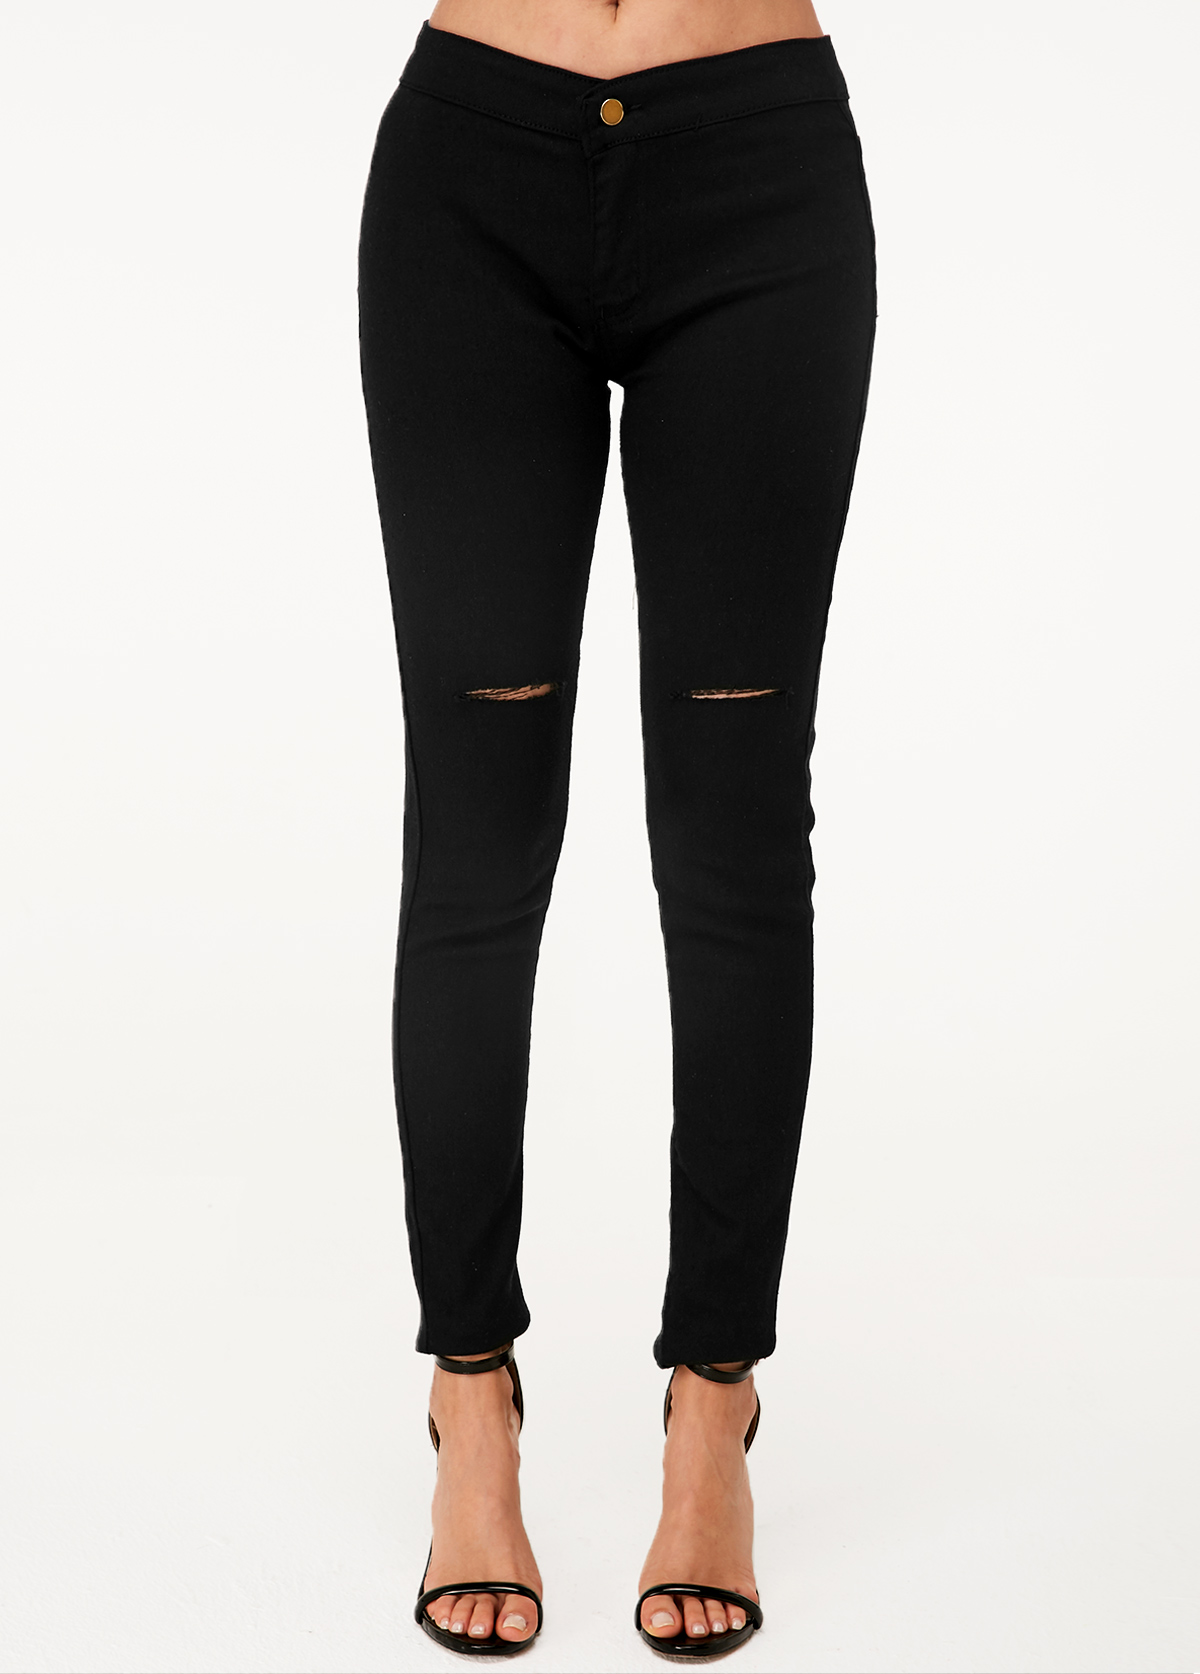 Shredded Black High Waist Skinny Jeans